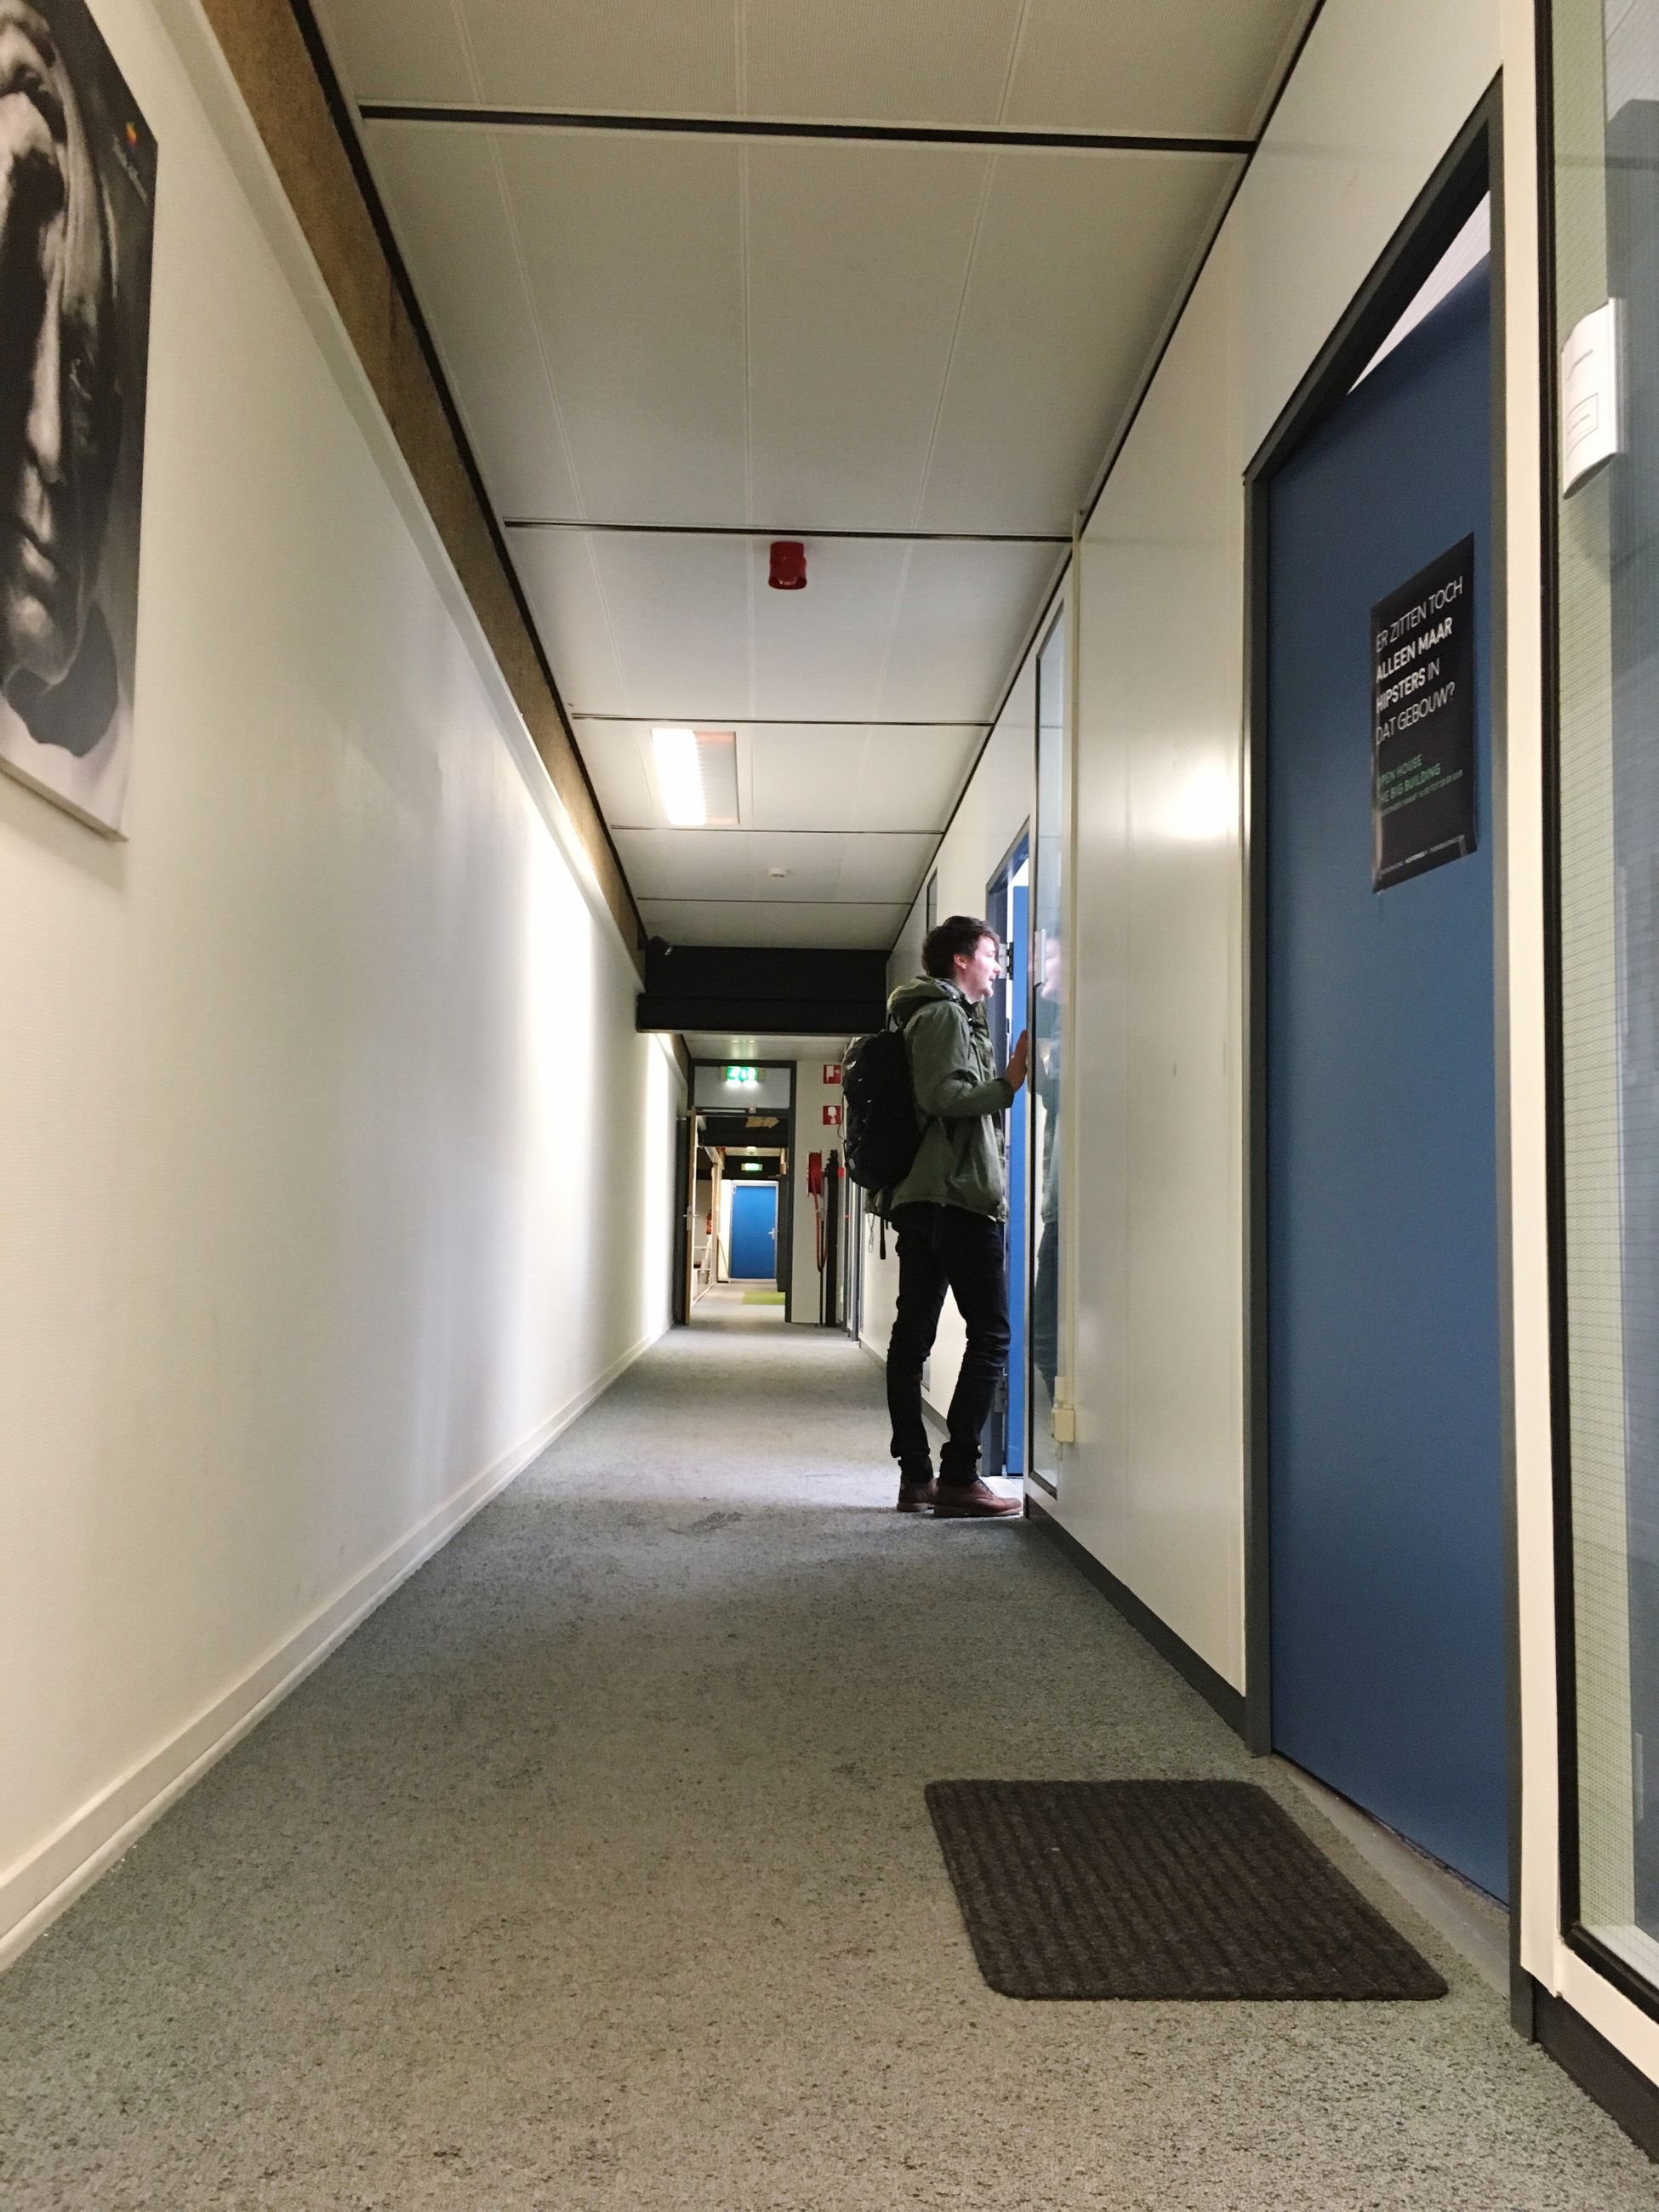 indoors, corridor, the way forward, architecture, built structure, illuminated, walking, men, ceiling, full length, diminishing perspective, rear view, lighting equipment, empty, transportation, narrow, wall - building feature, lifestyles